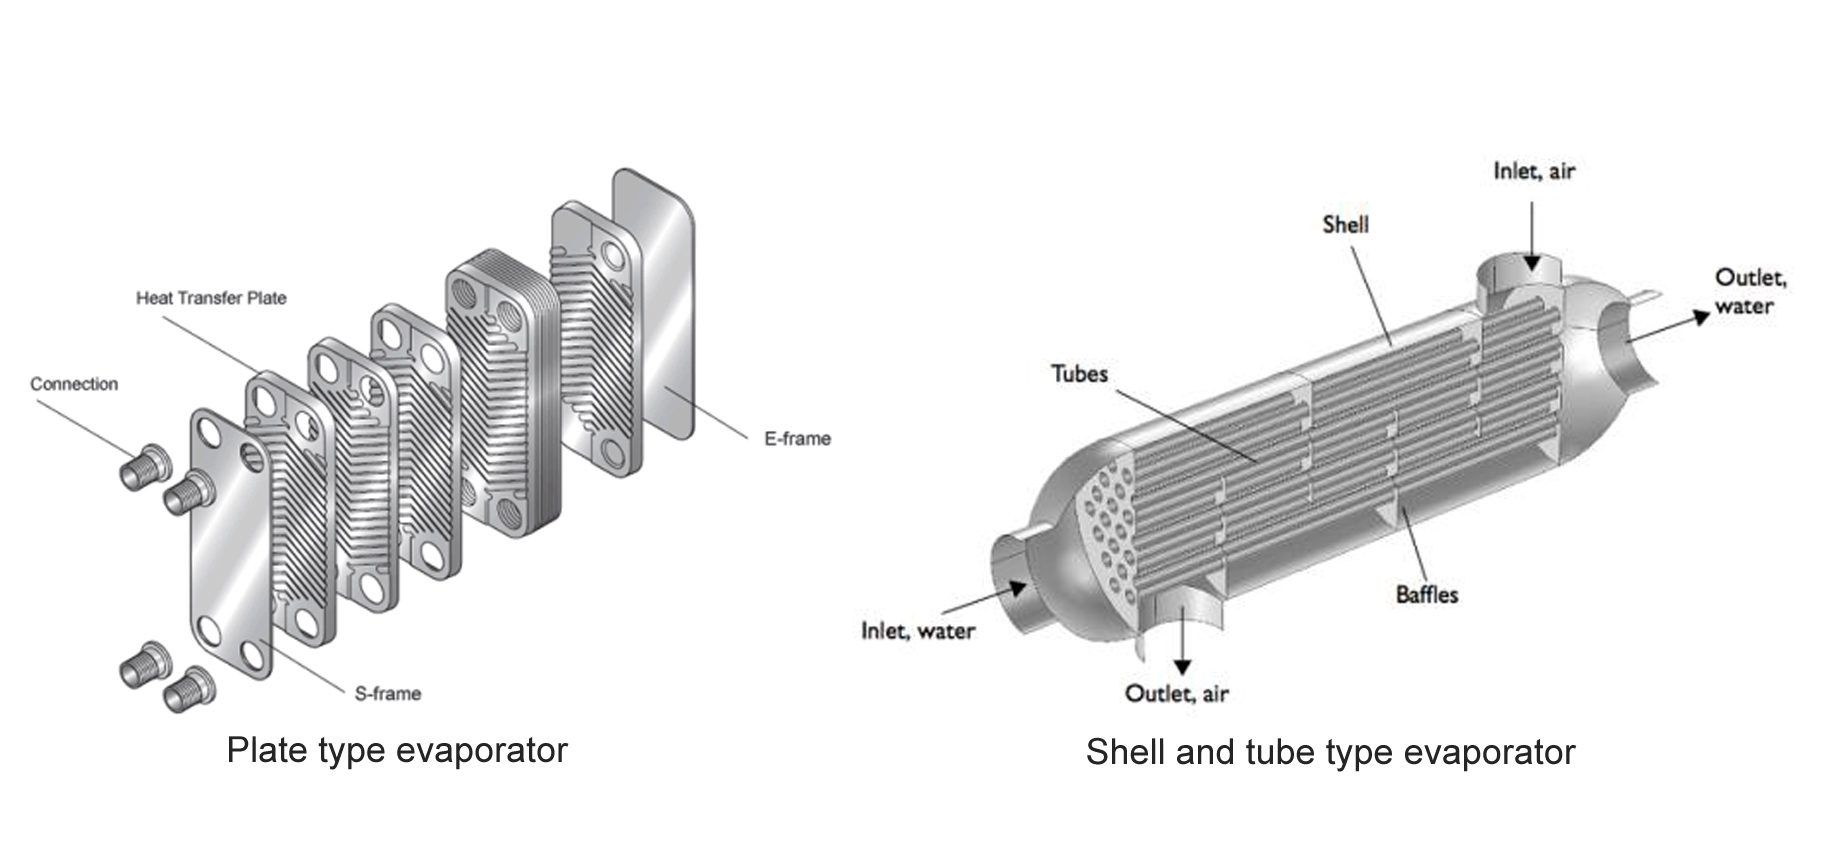 Difference of Chiller Evaporators